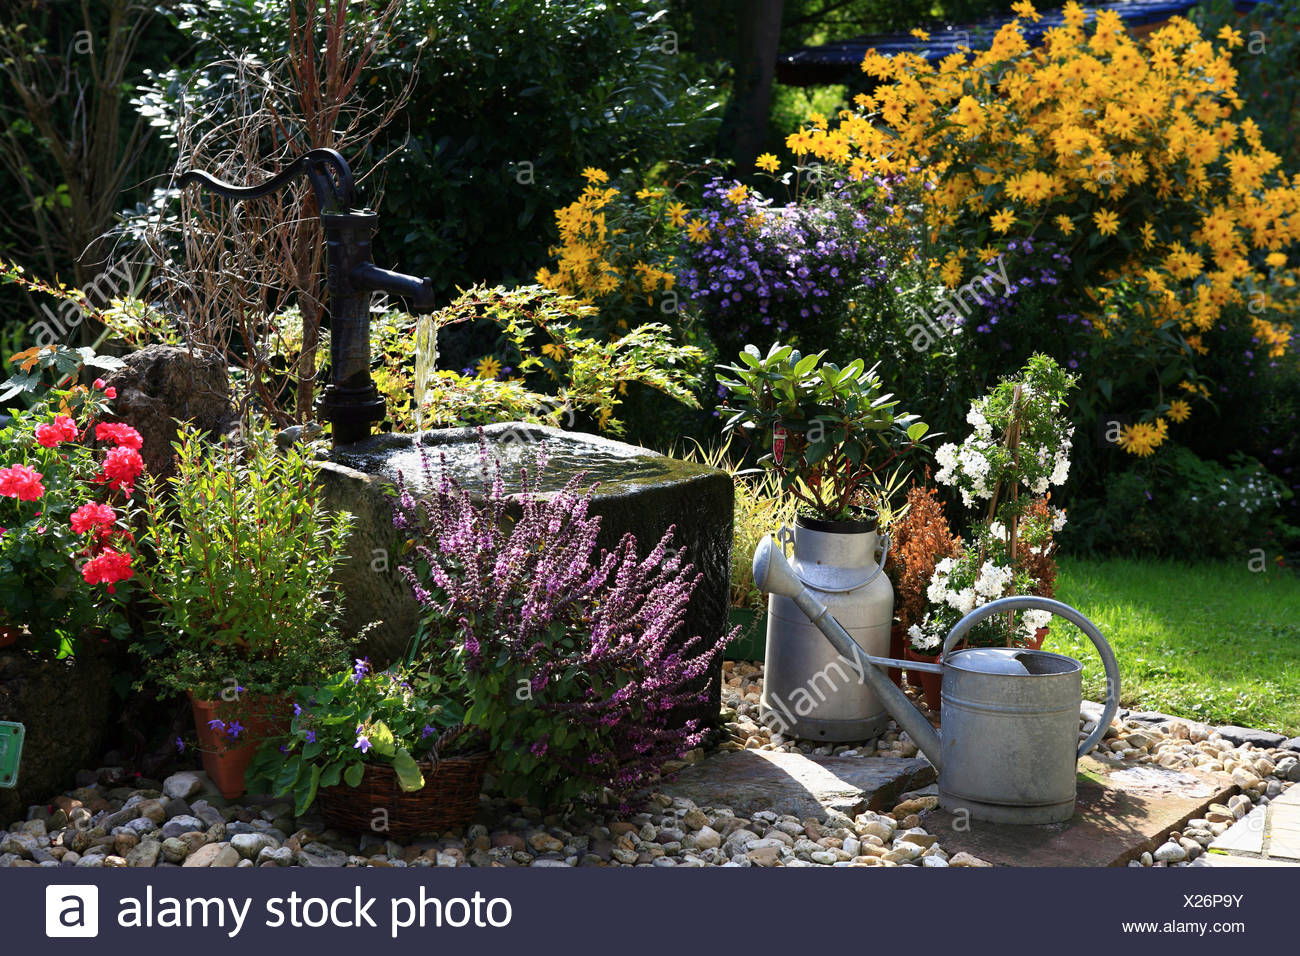 hand pump and trough in the garden - Stock Image